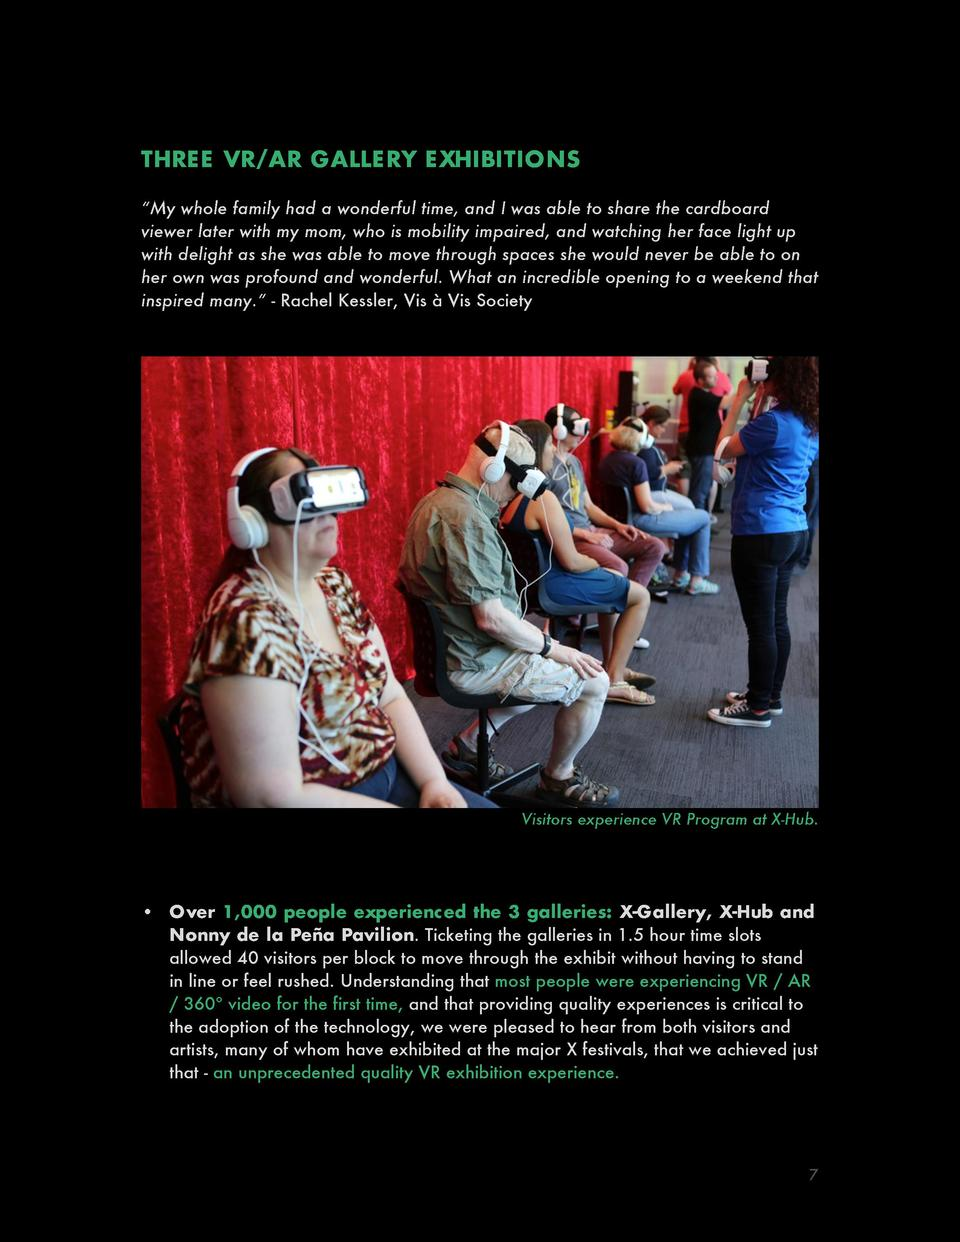 THRE E VR AR GALLE RY E XHIBITIONS    My whole family had a wonderful time, and I was able to share the cardboard viewer l...